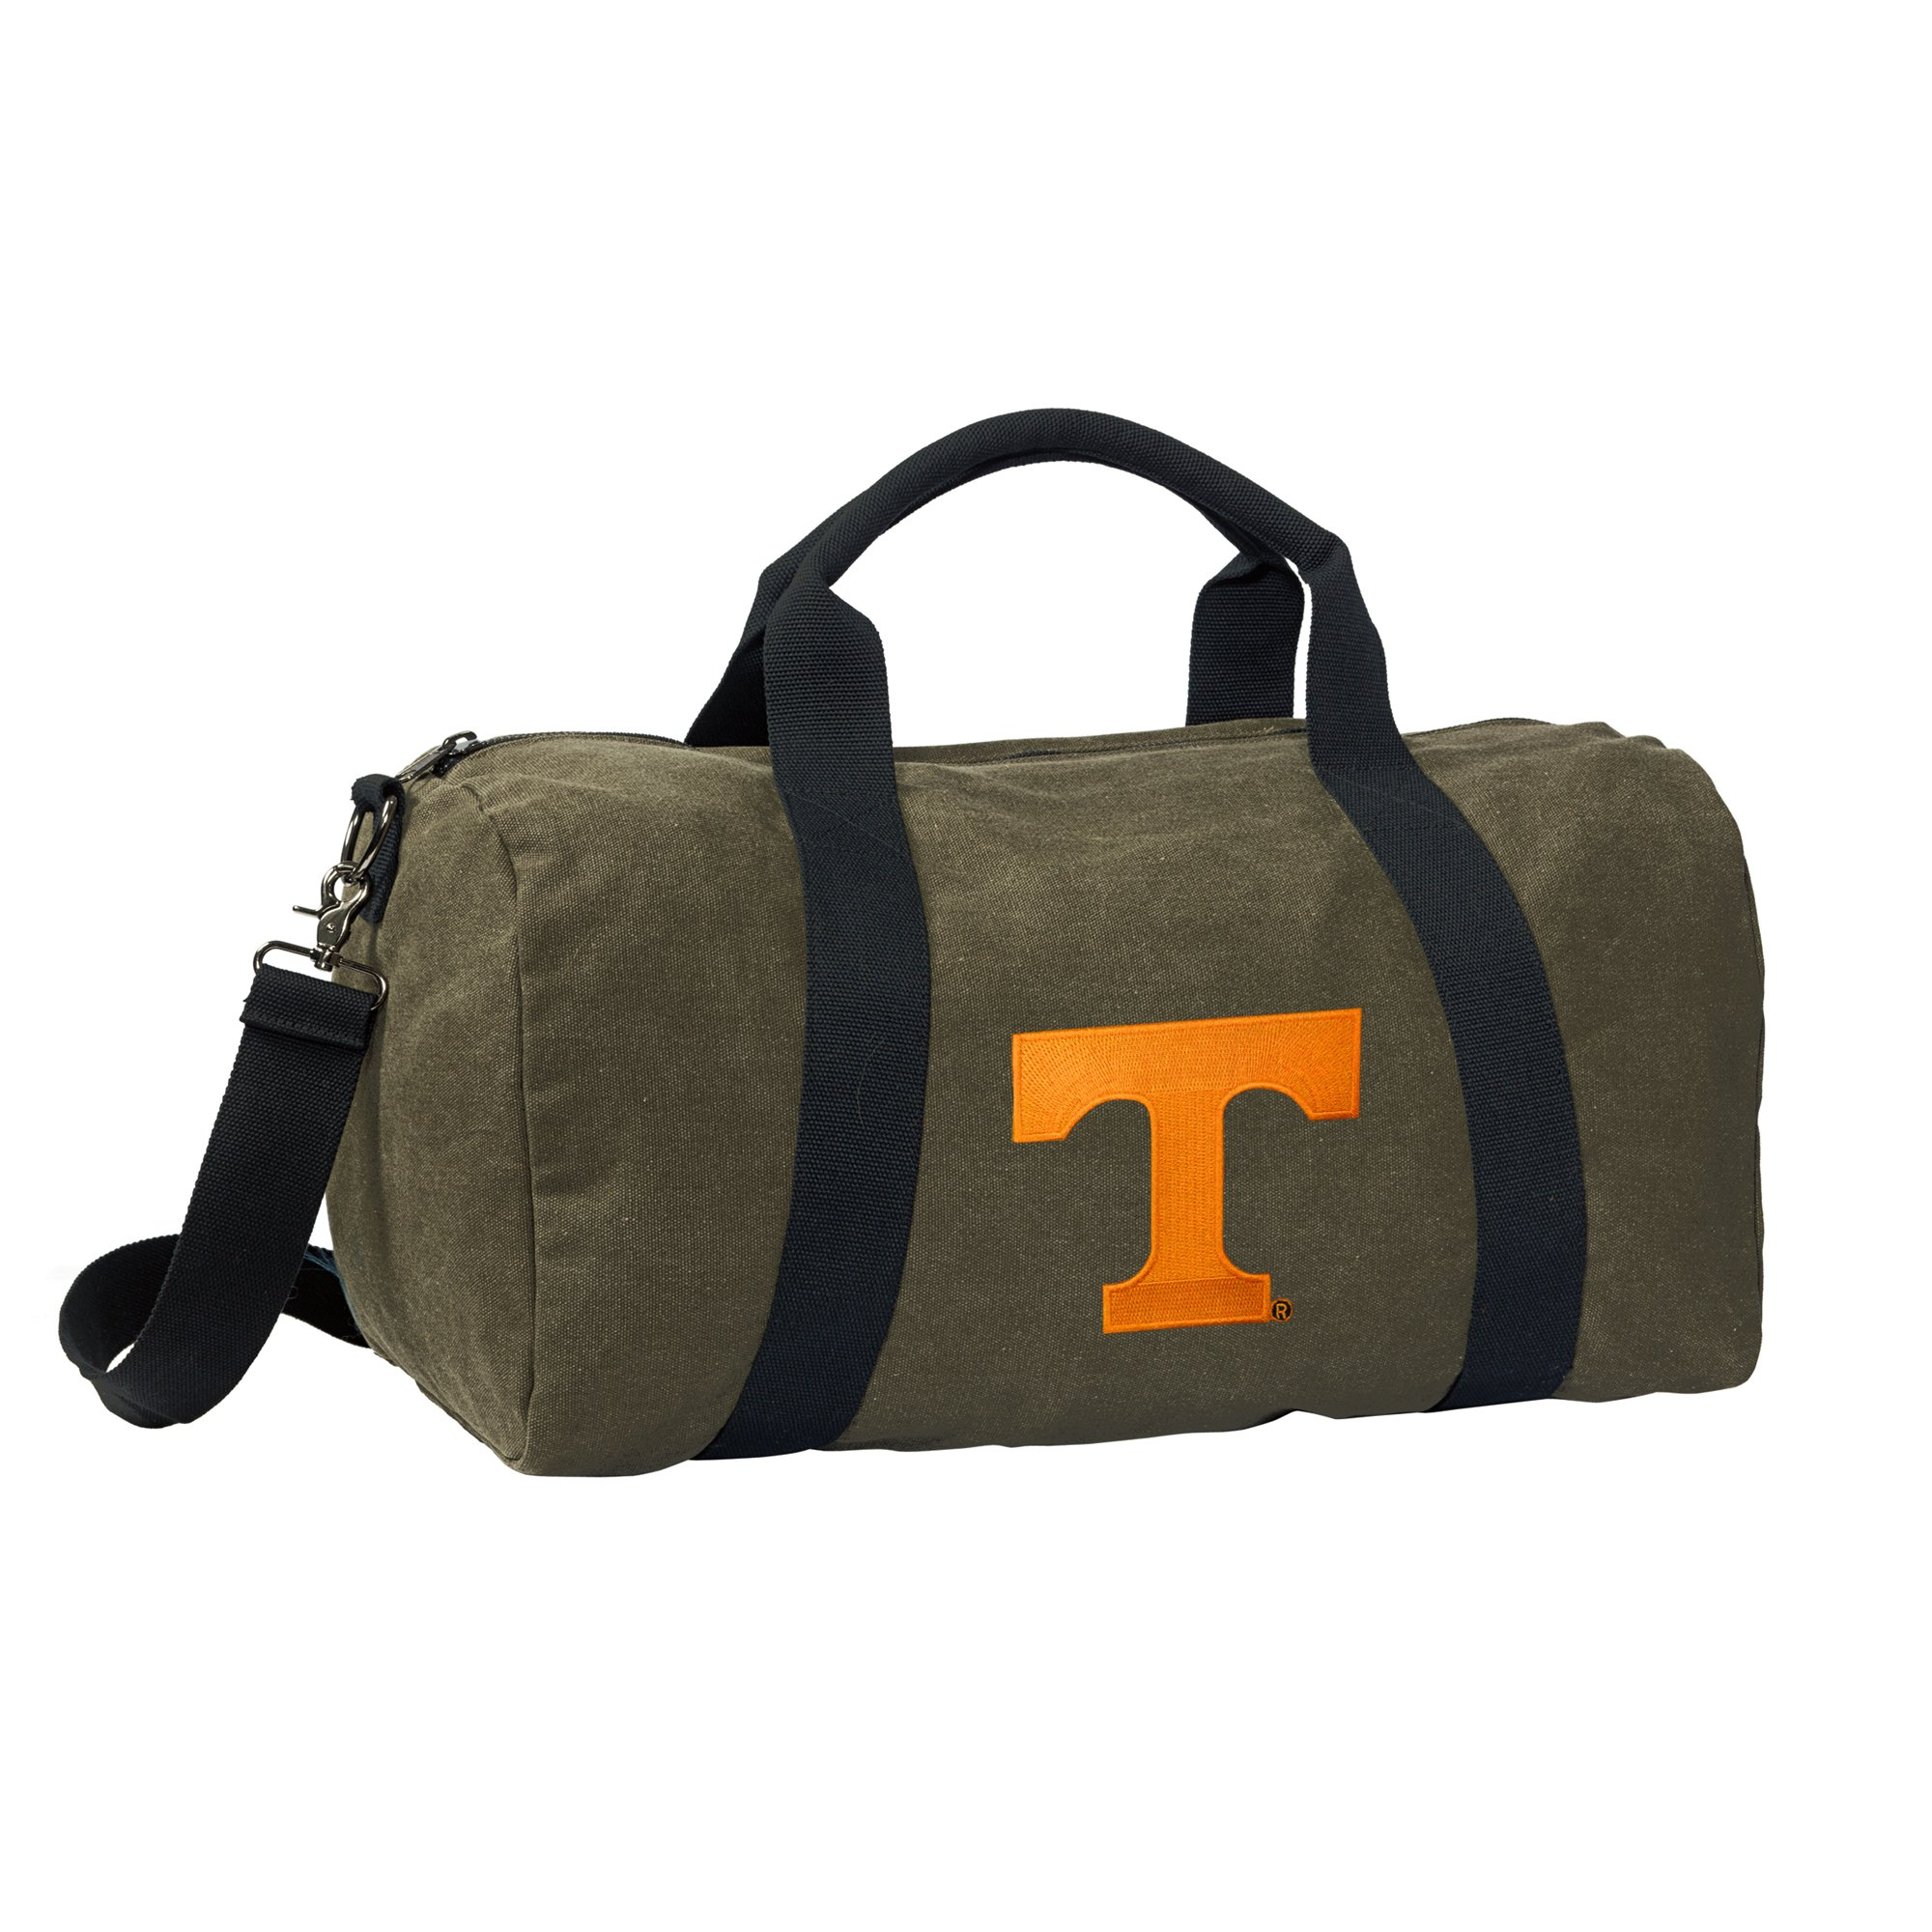 University of Tennessee Duffle Bag or CANVAS Tennessee Vols Gym Bags